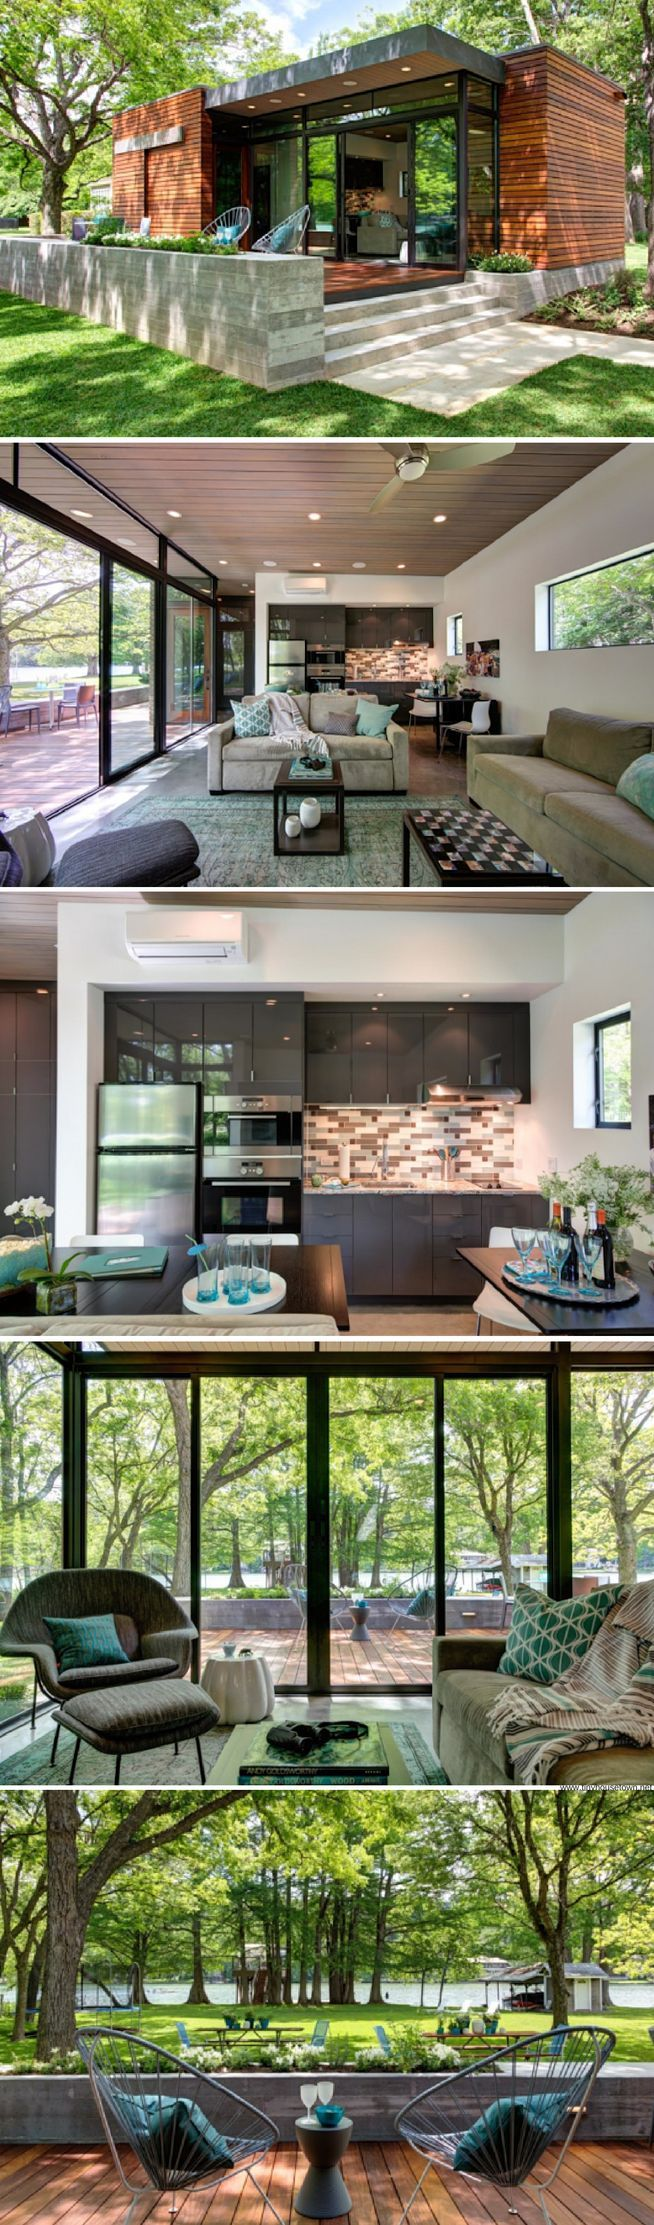 450 best small living images on pinterest small houses tiny